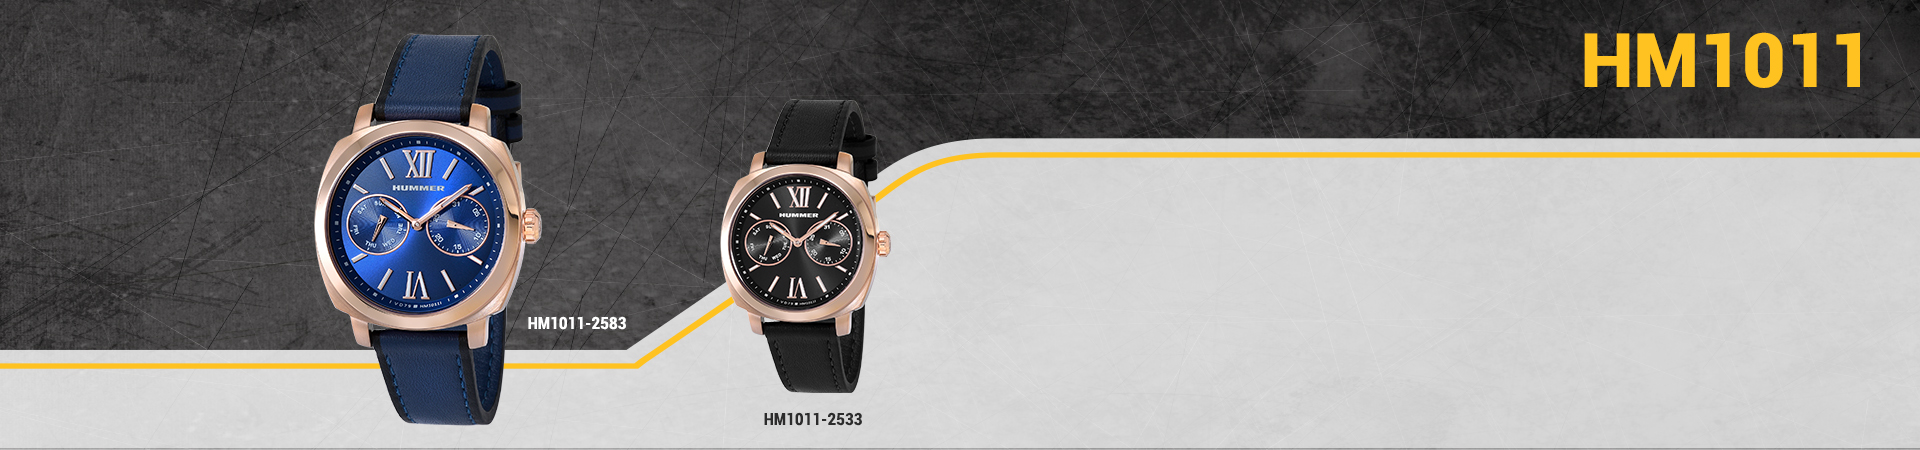 Hummer Watch Collection HM1011